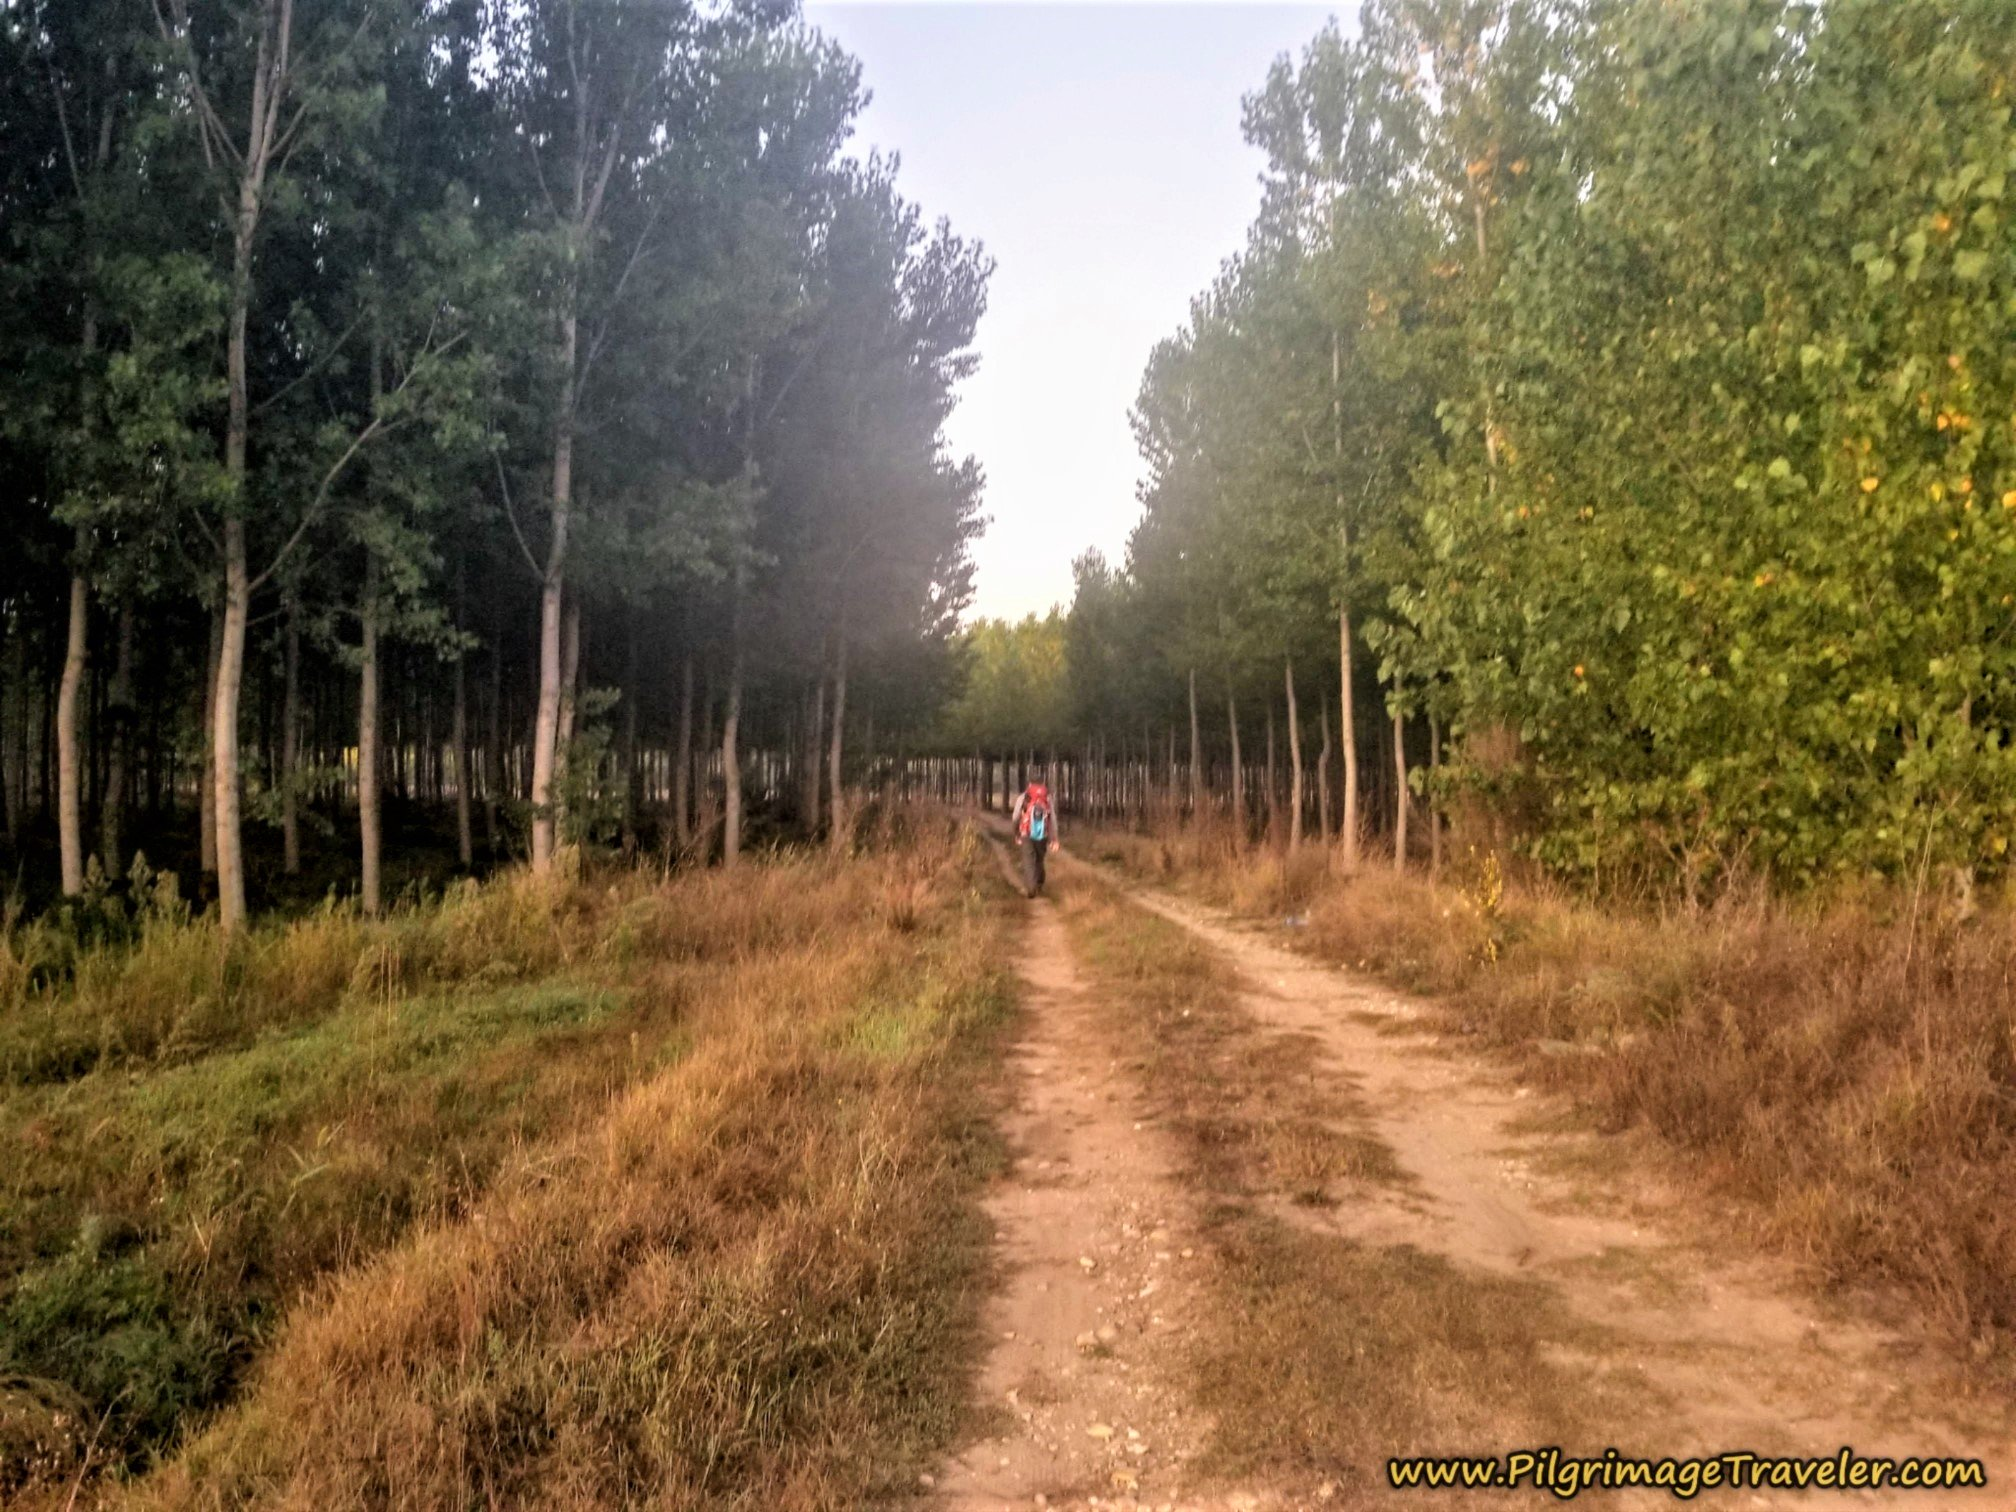 Walking Through Cultivated Forests